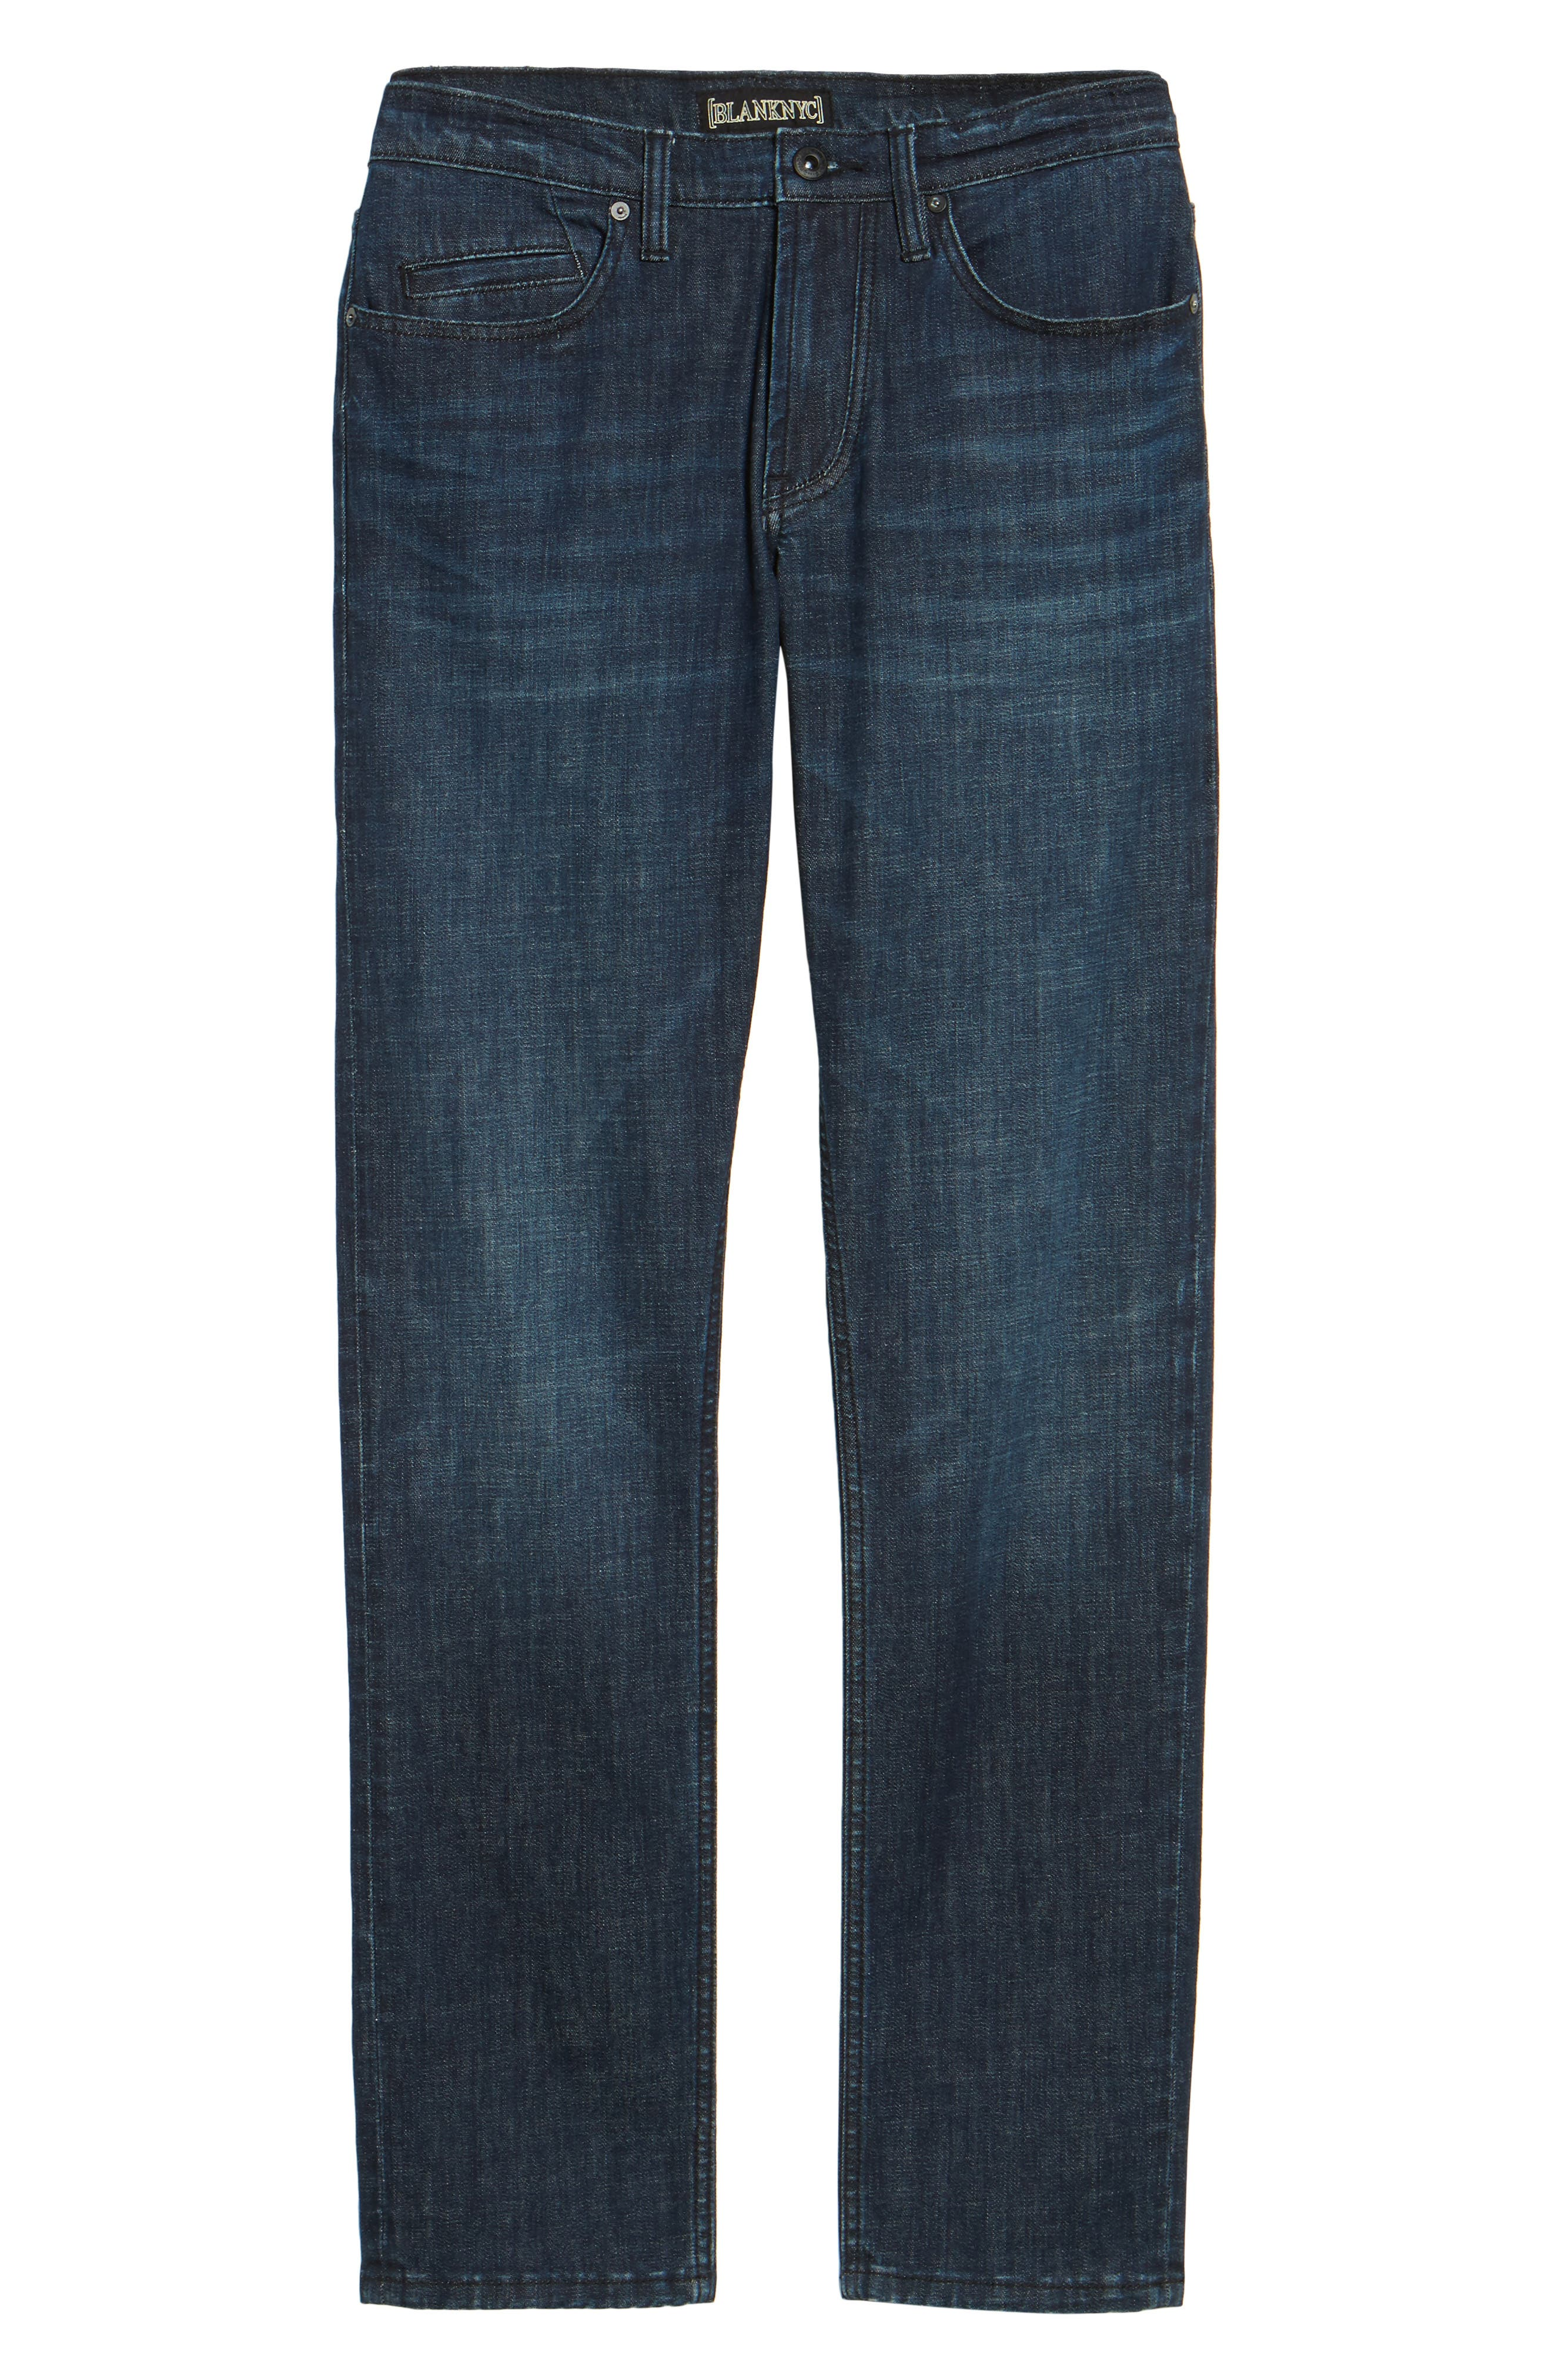 Wooster Slim Fit Jeans,                             Alternate thumbnail 4, color,